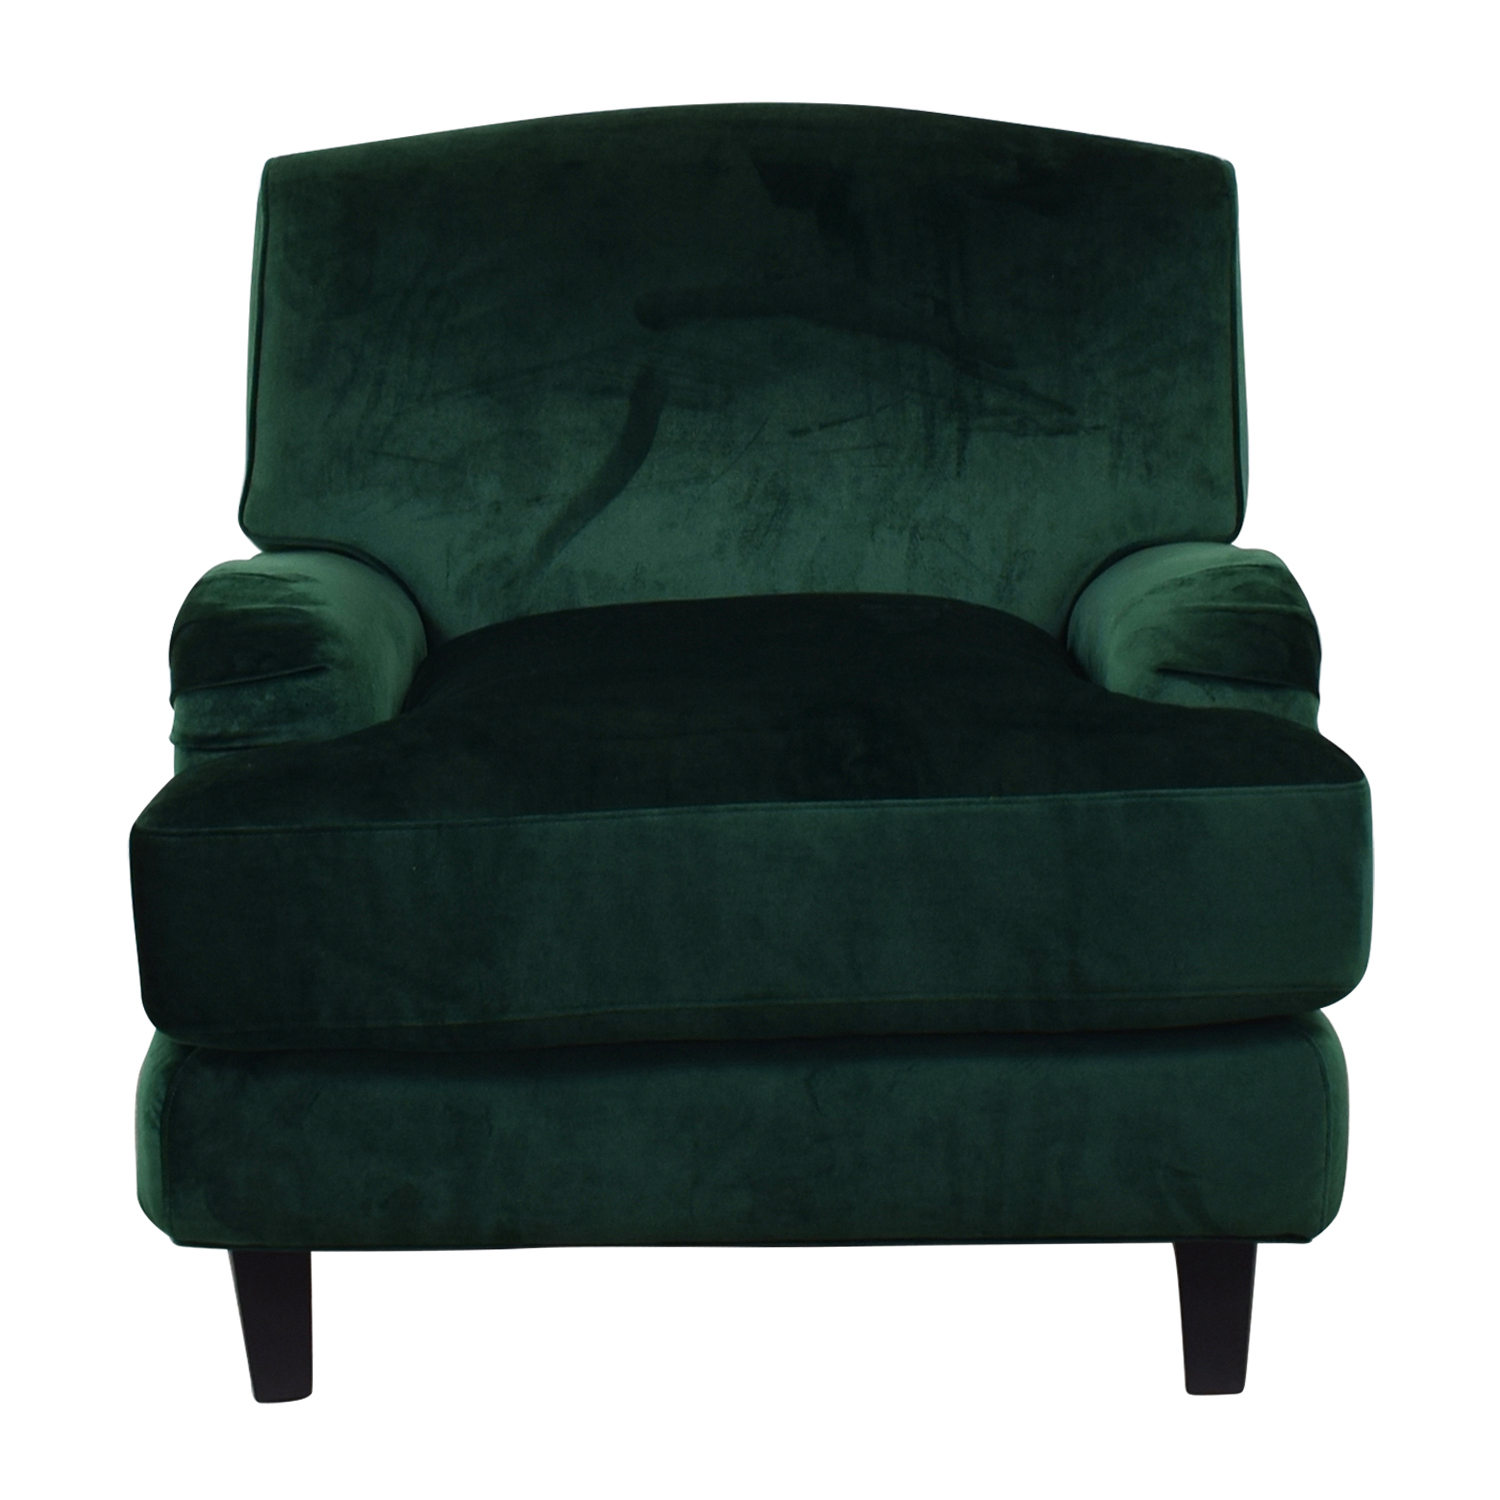 Rose Emerald Green Chair coupon